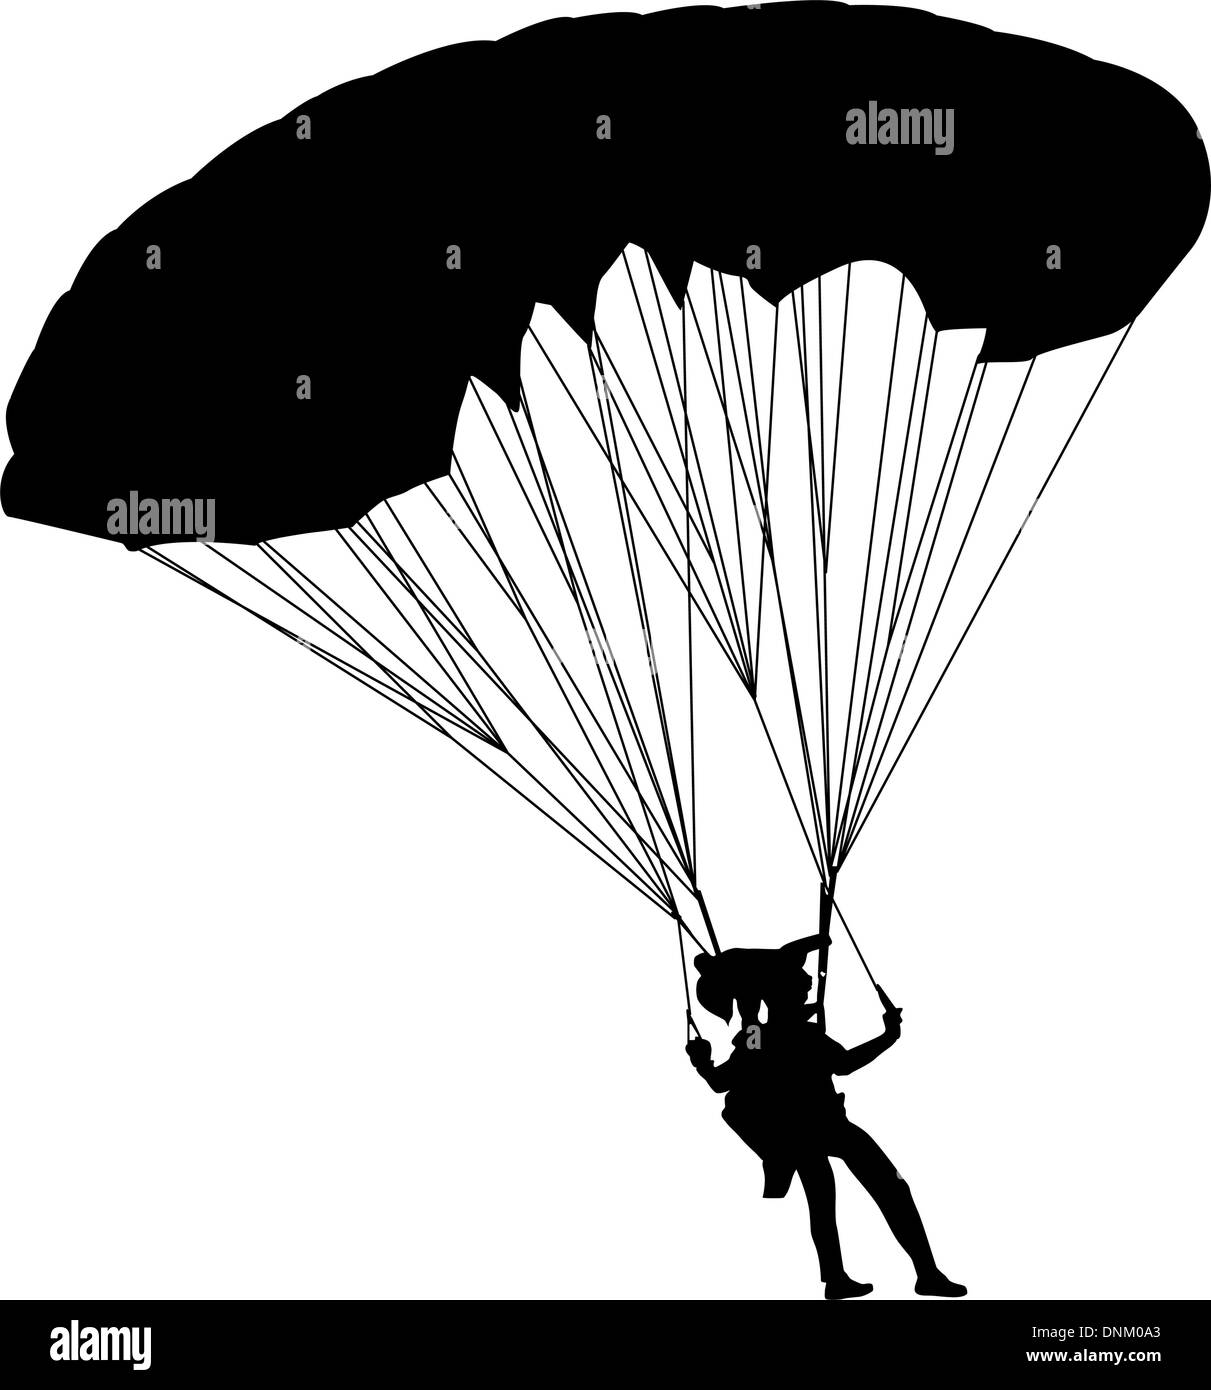 jumper, black and white silhouettes vector illustration - Stock Image